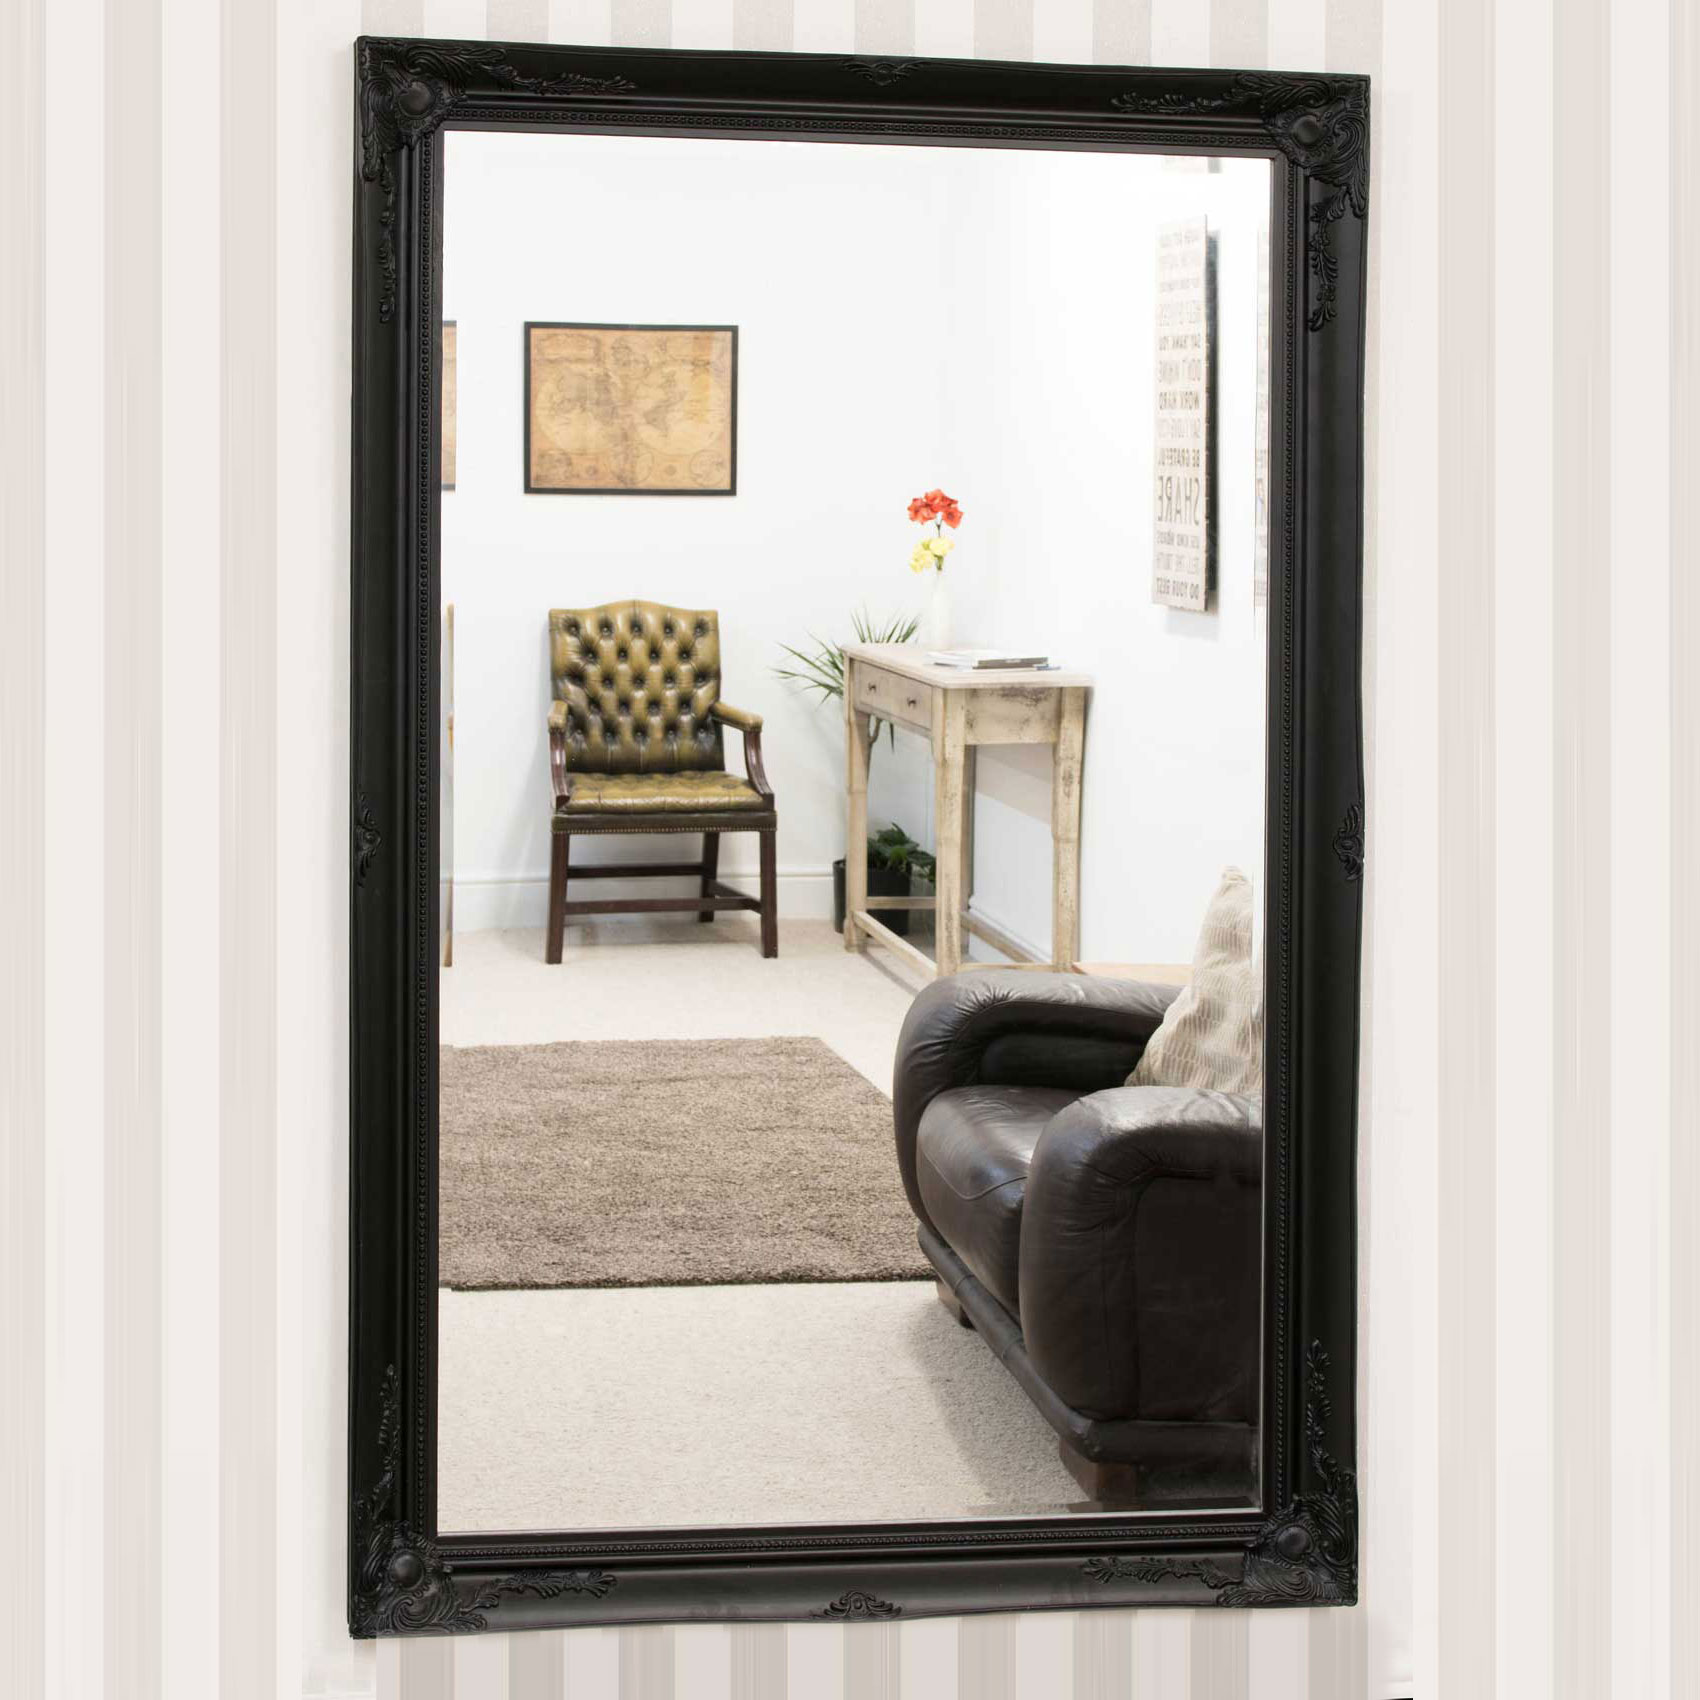 V Large Antique Style Black Mirror Rectangle Wall Mounted ... on Wall Mirrors id=78452